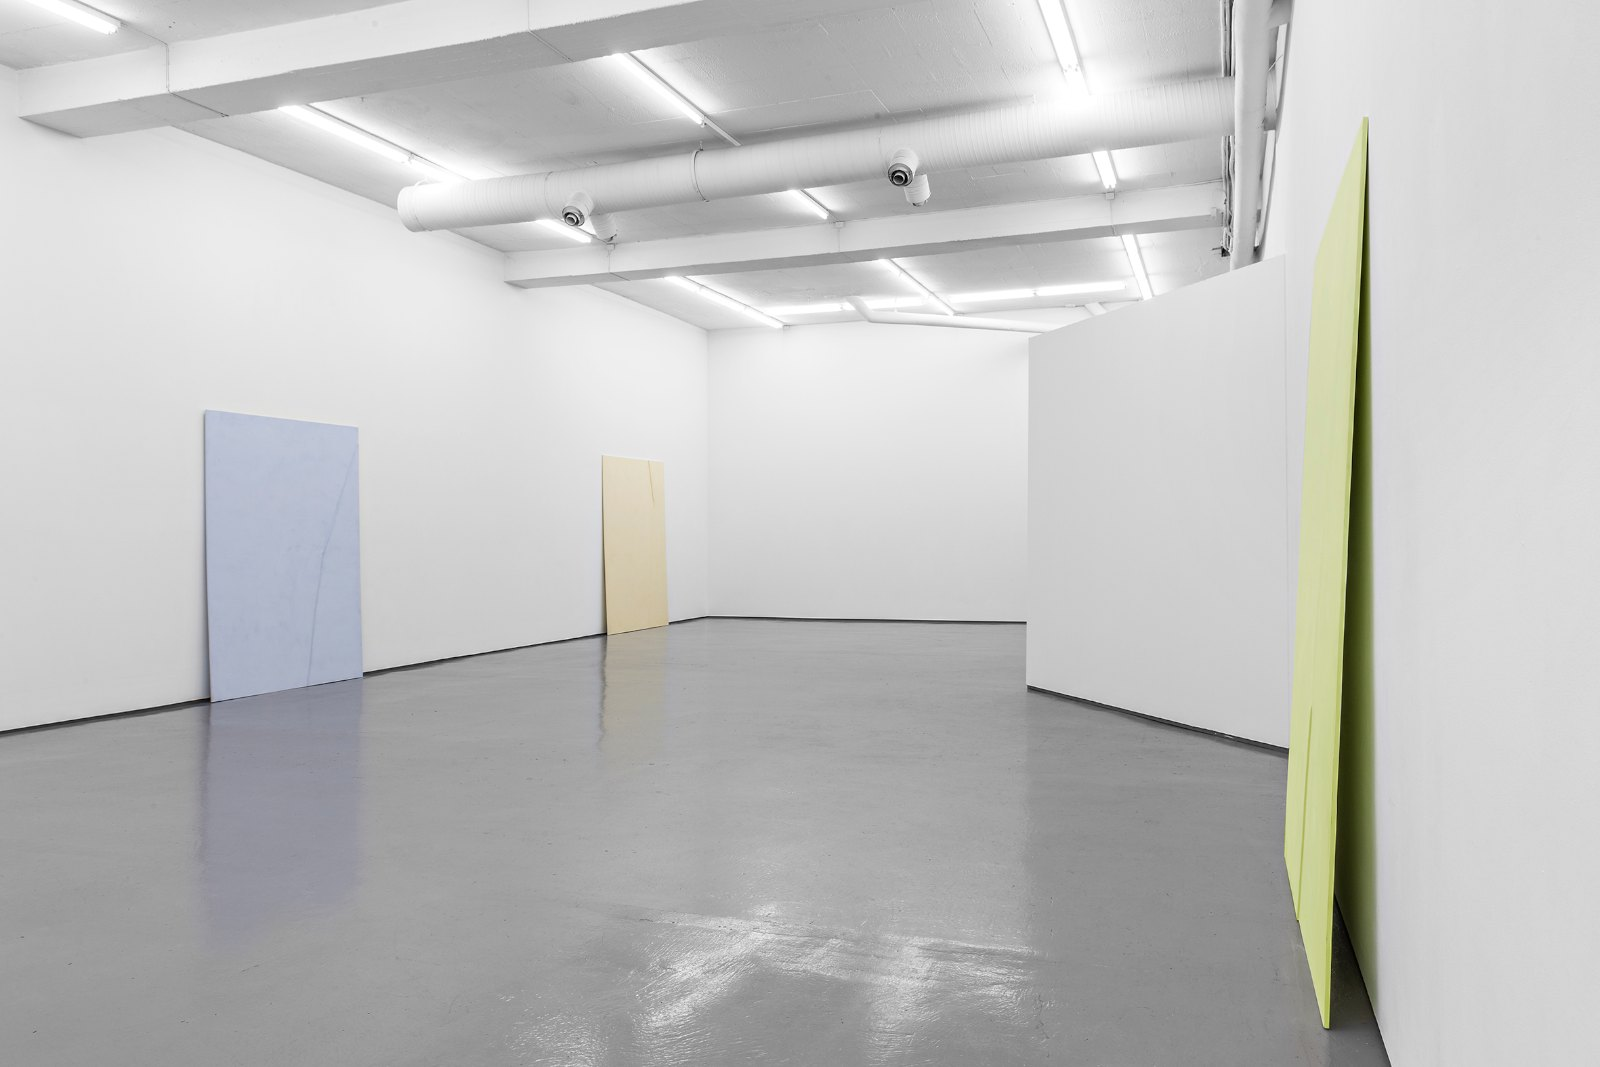 Installation view, Marte Johnslien, Relevo, Galleri Riis, 2014